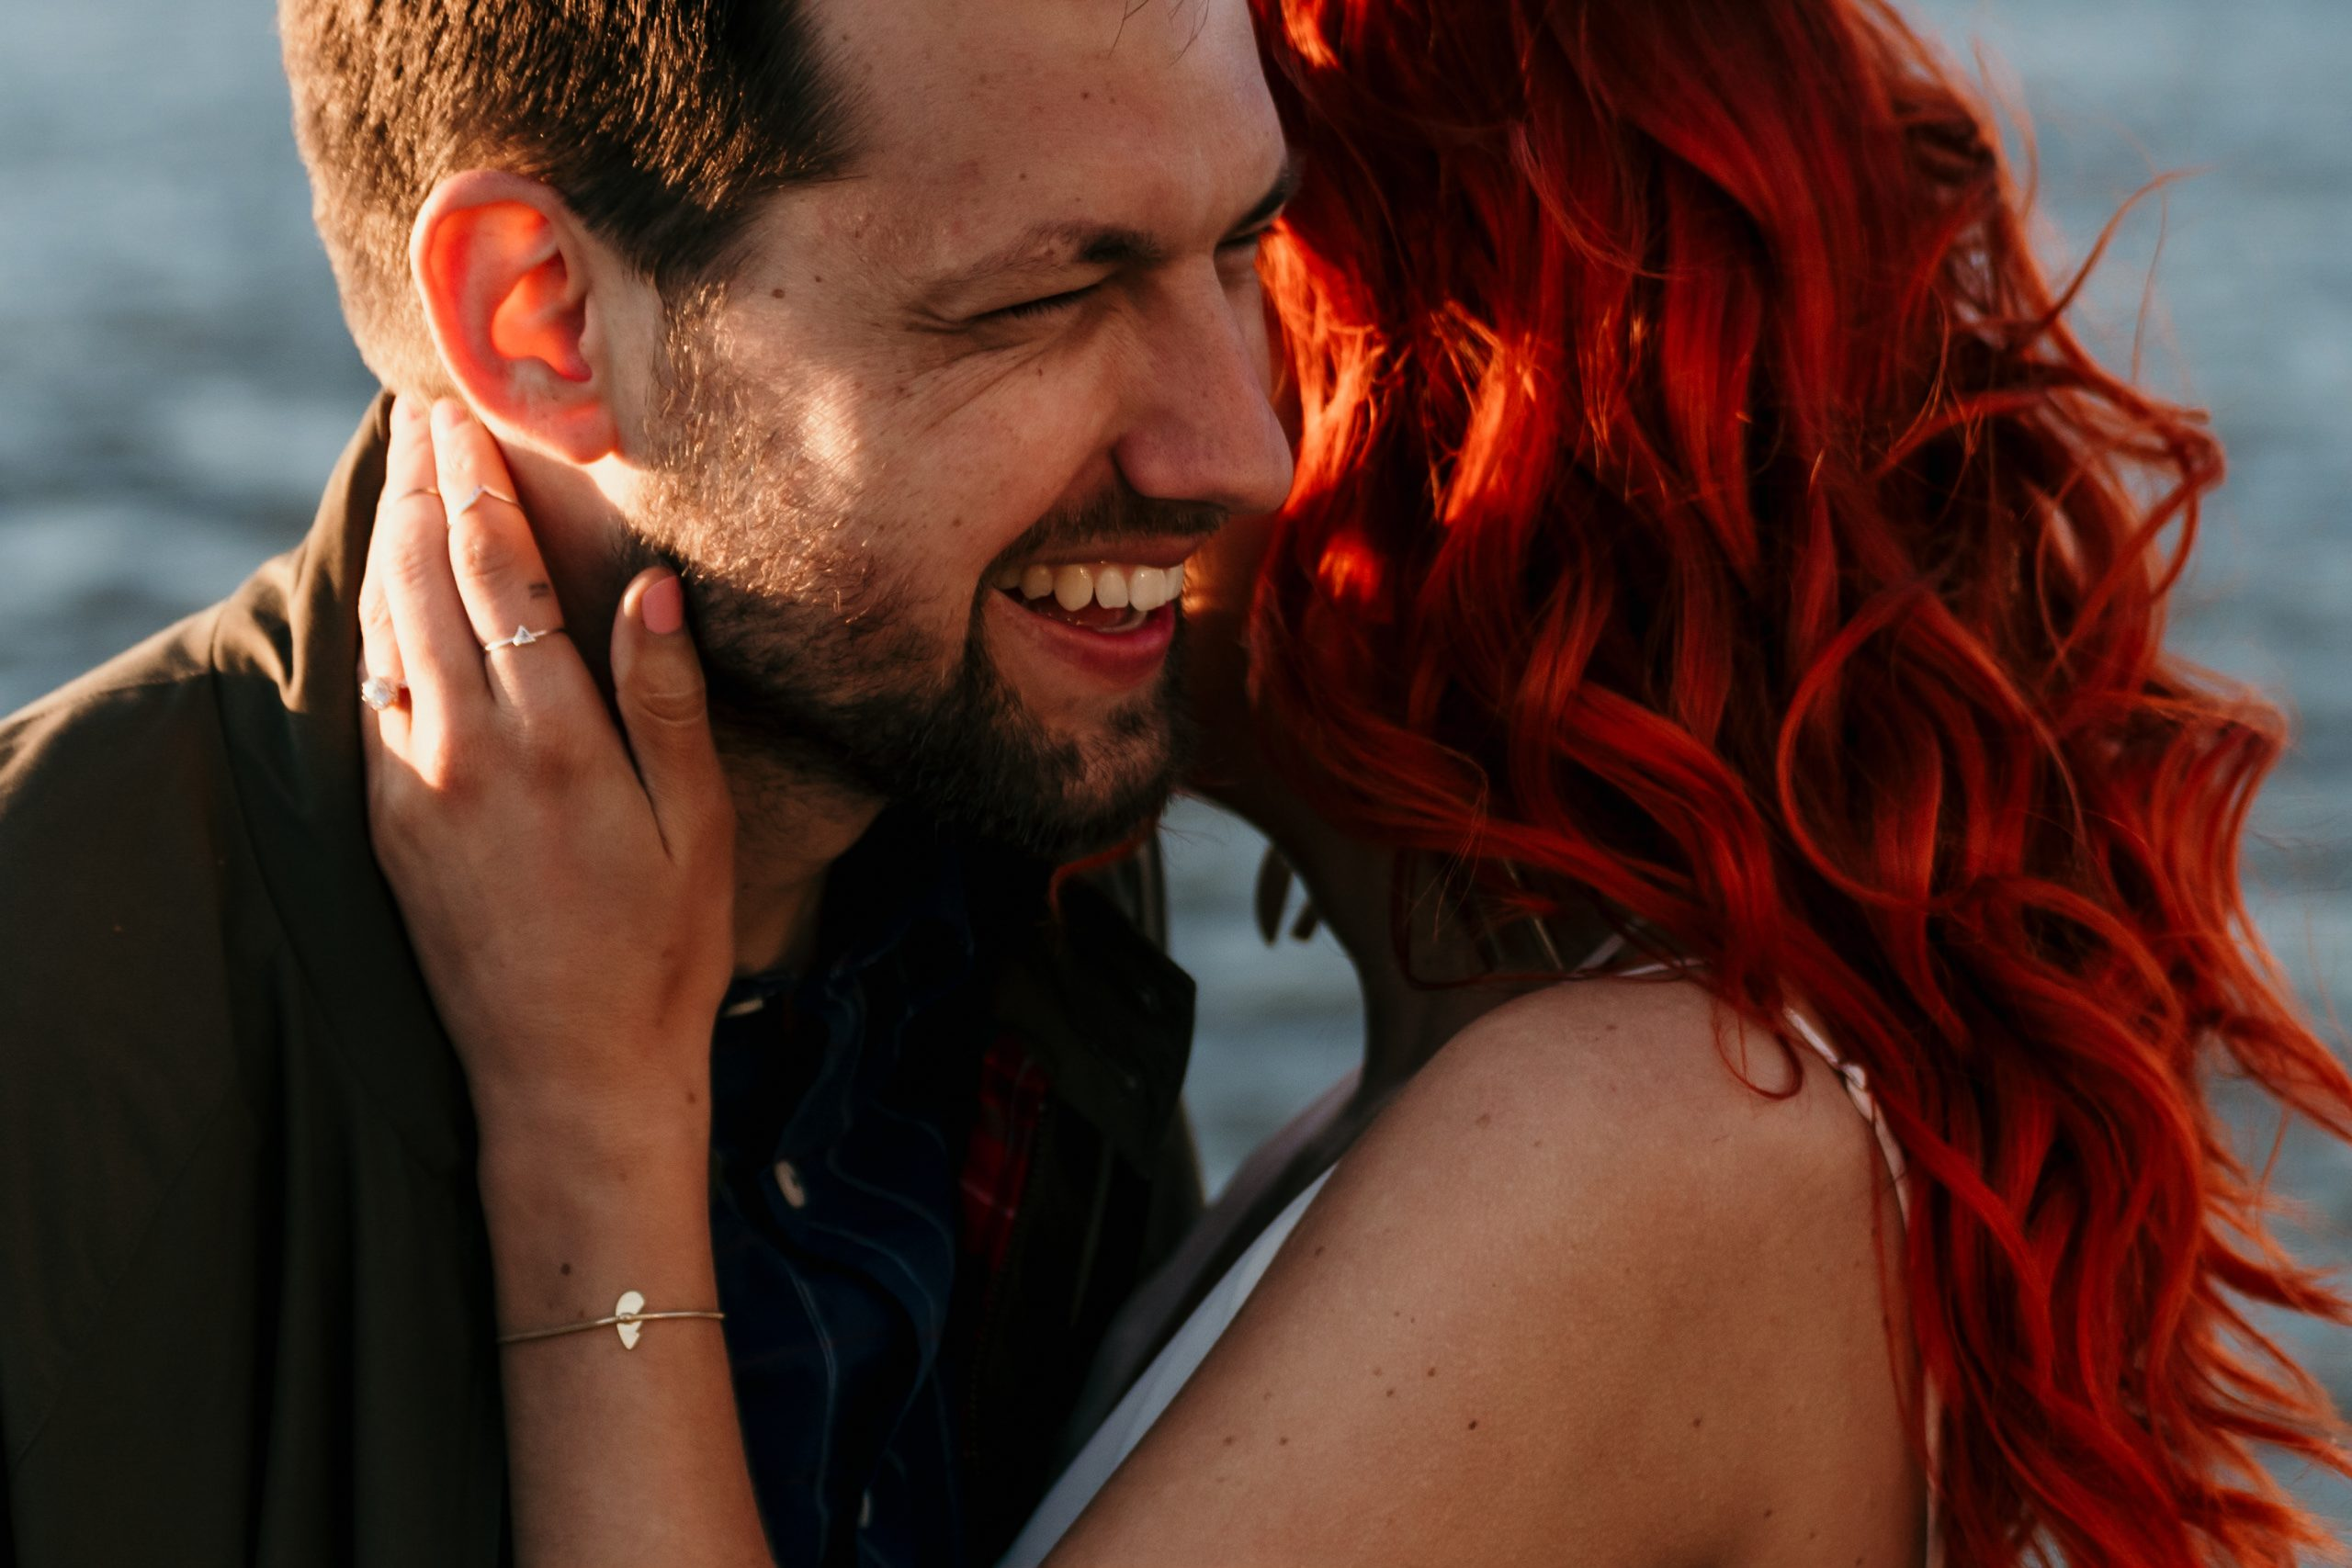 candid-photos-of-engaged-couples-suessmoments-nyc-photographer